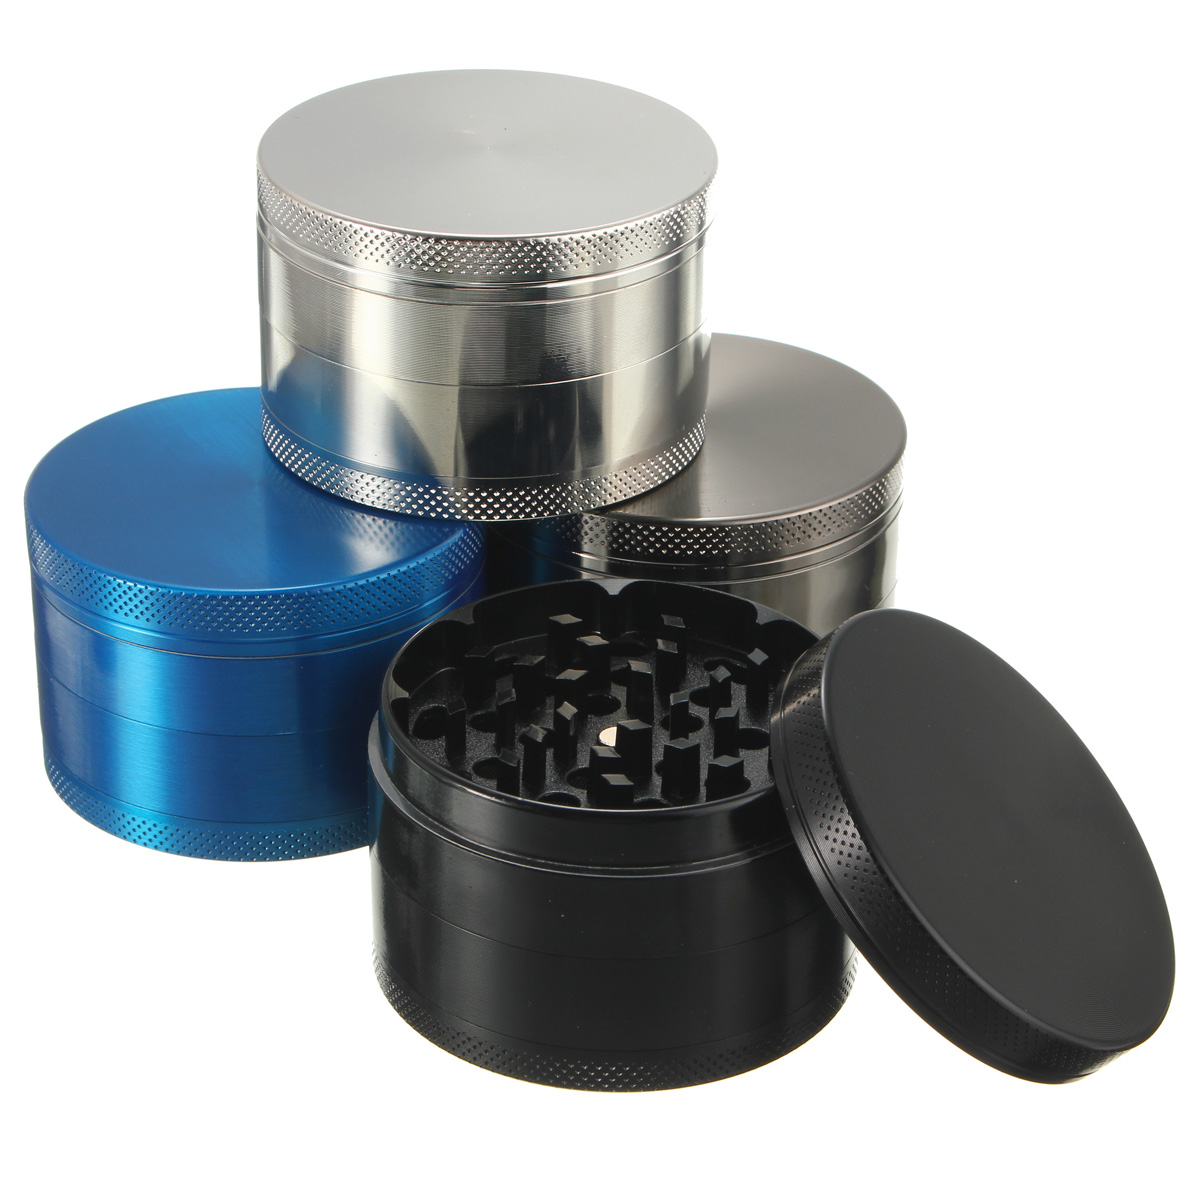 4-Layers Zinc Alloy Herb Spice Grinder Portable Smoke Crusher Spice Crusher Tobacco Herbal,Muilt Color